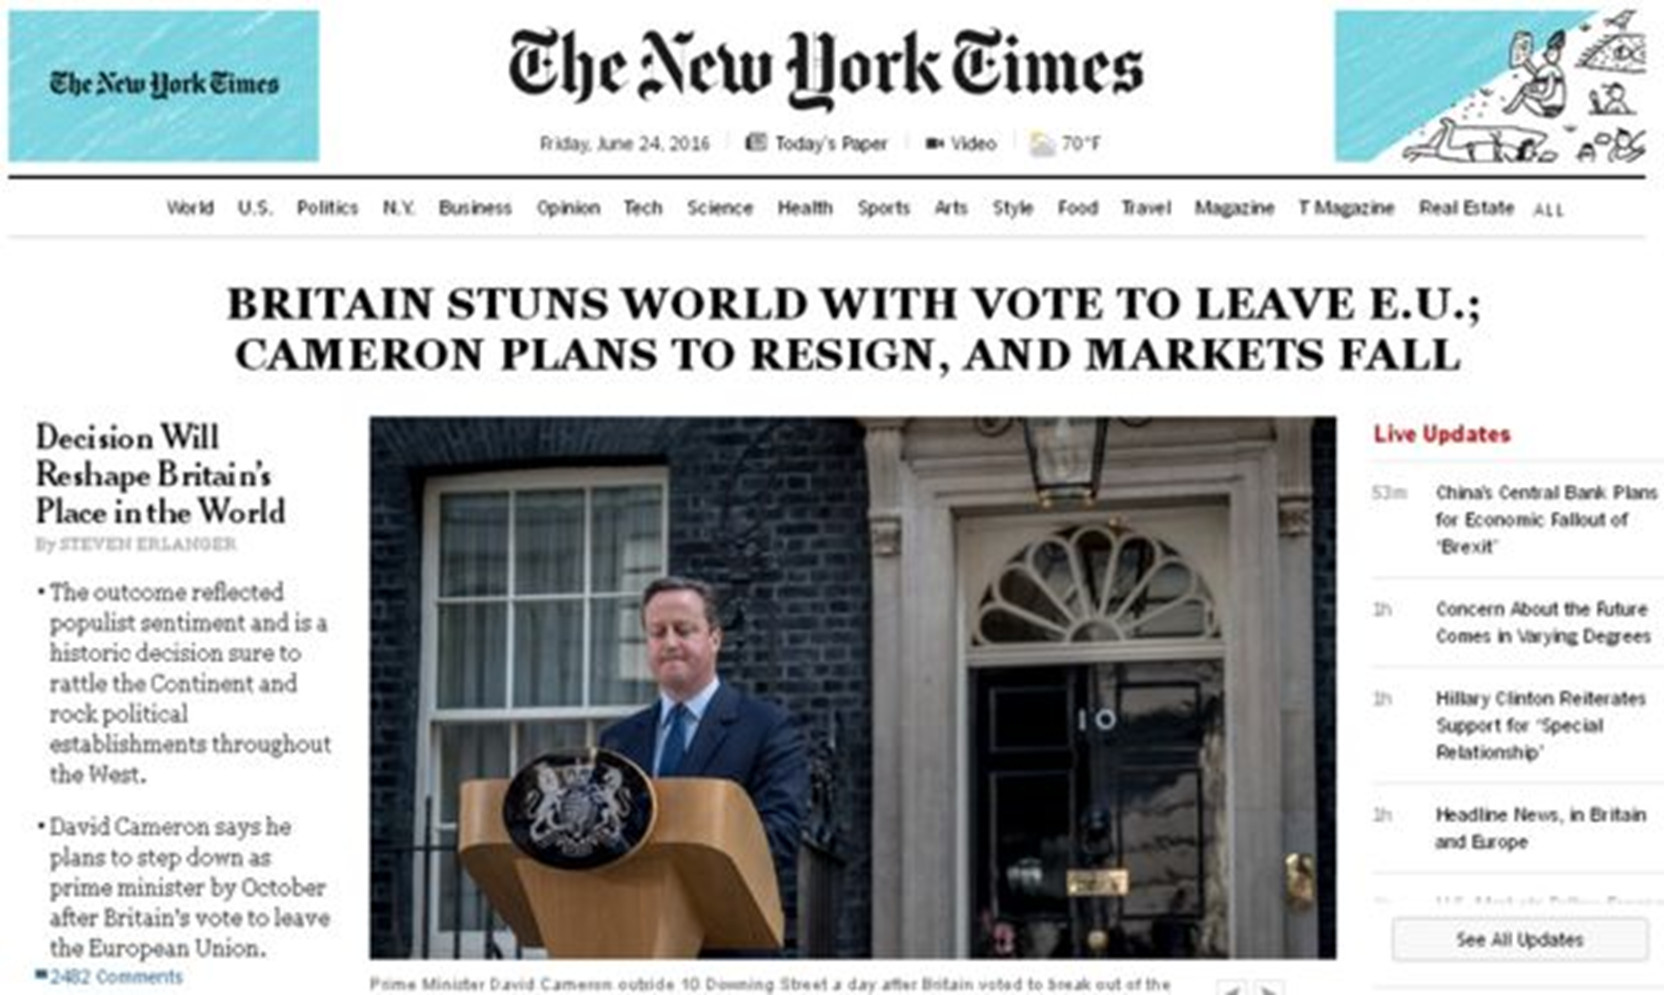 New York Times front page, the day after the Brexit referendum